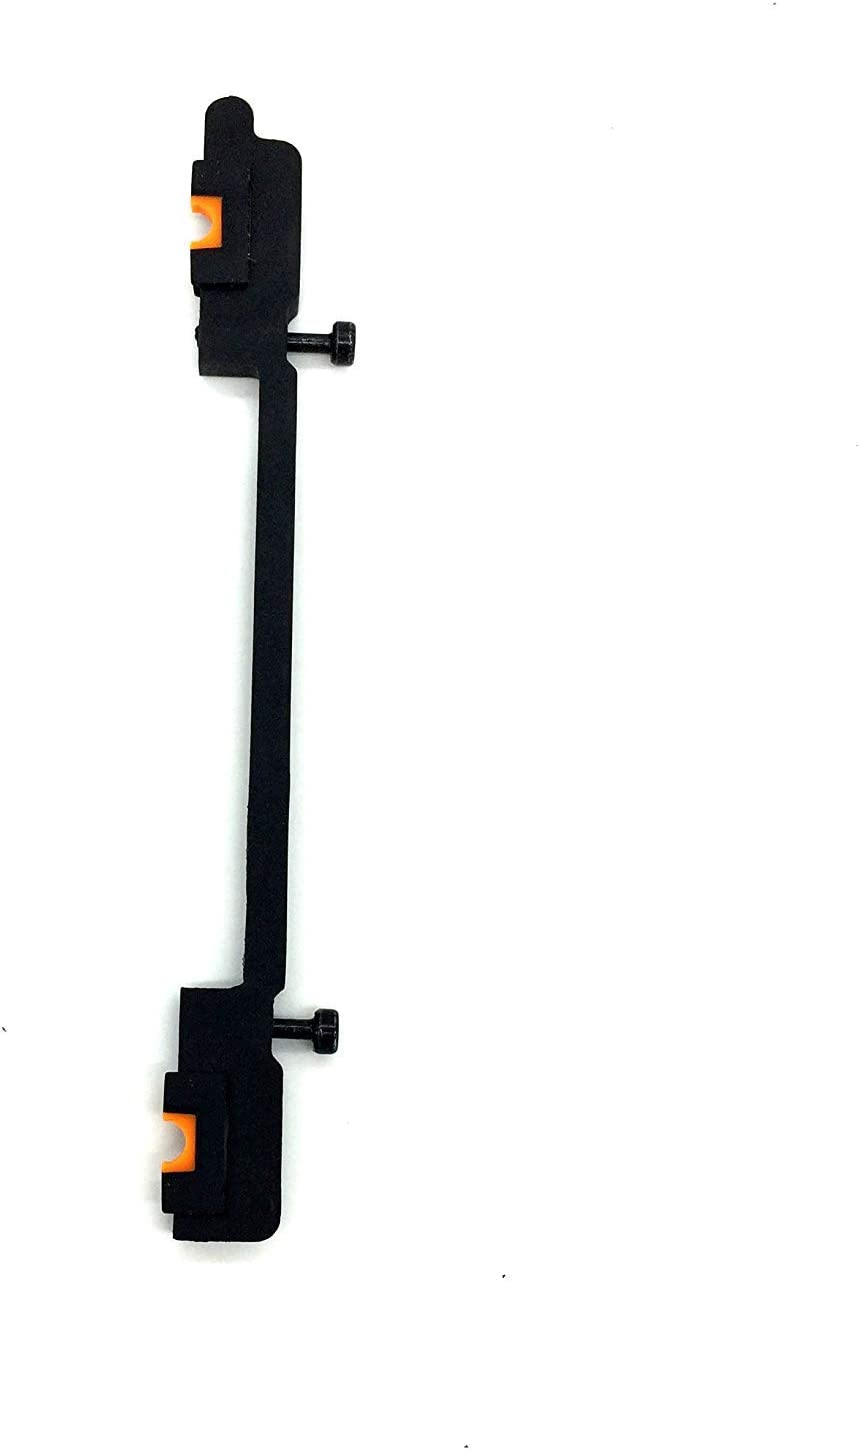 """New Hard Drive Bracket Replacement for MacBook Pro 13"""" A1278 15"""" A1286 (2009, 2010, 2011, 2012) (922-9065, 922-9087)"""